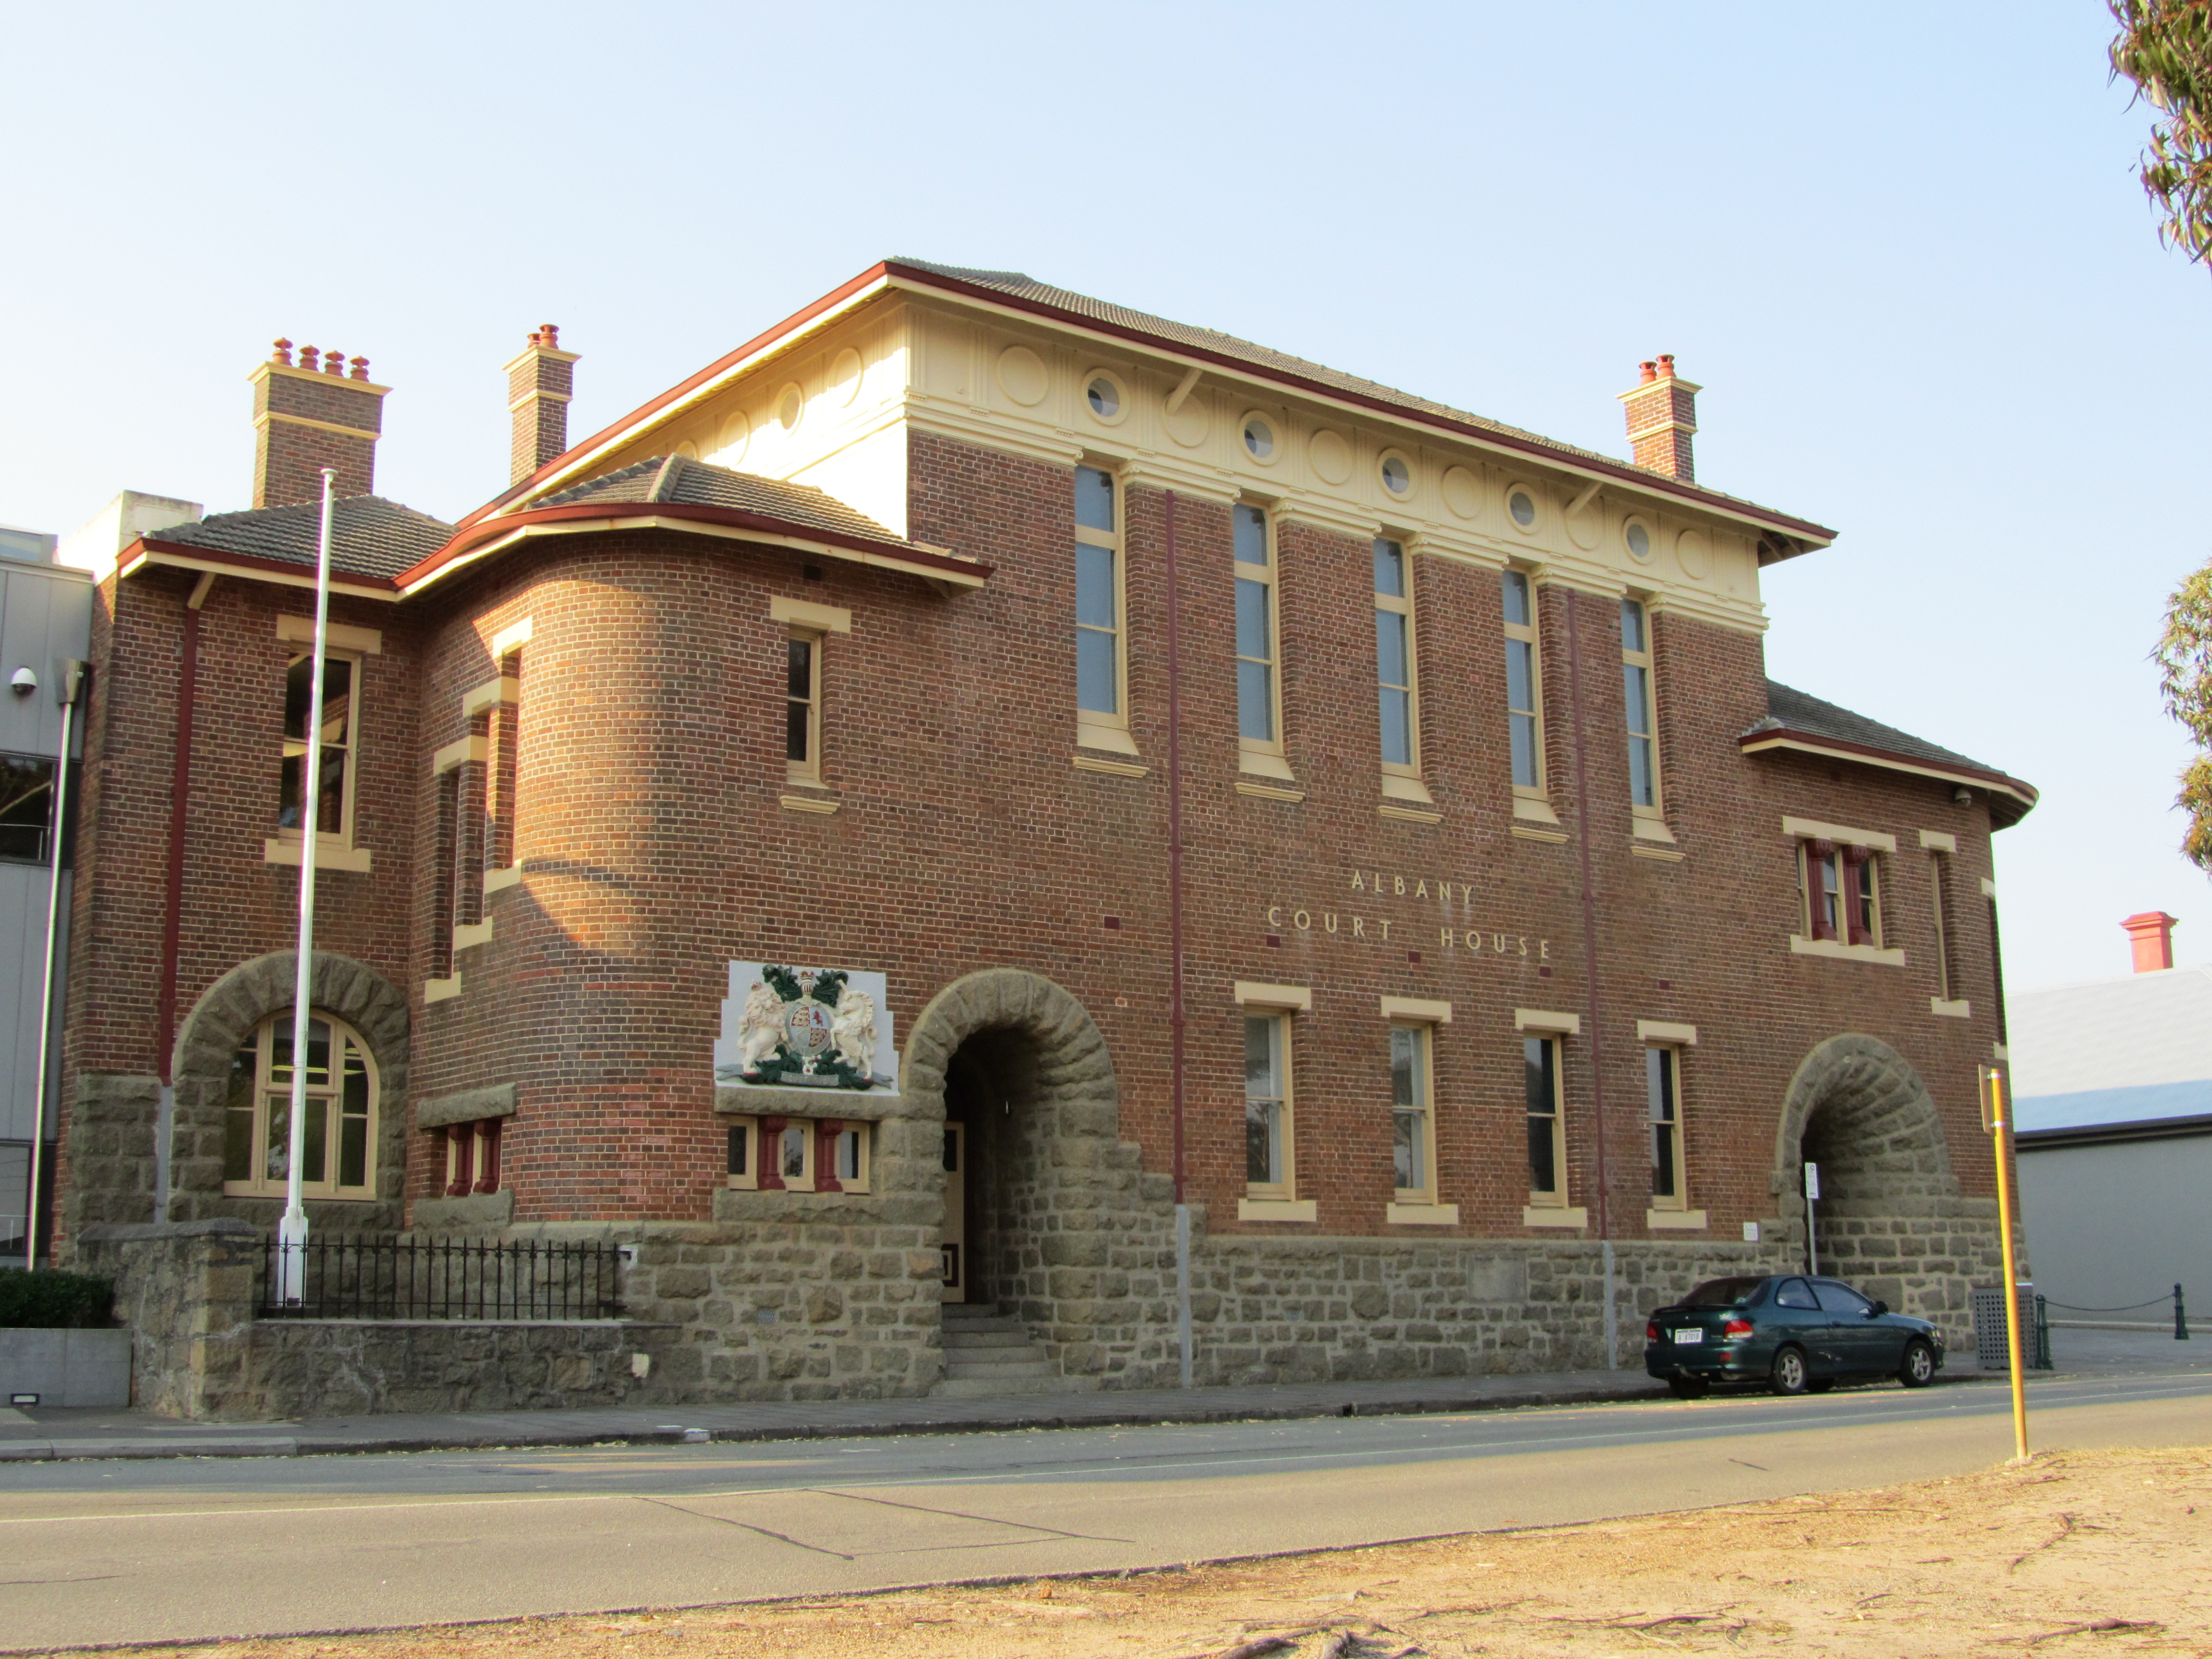 South west (Stirling Terrace) elevation courthouse